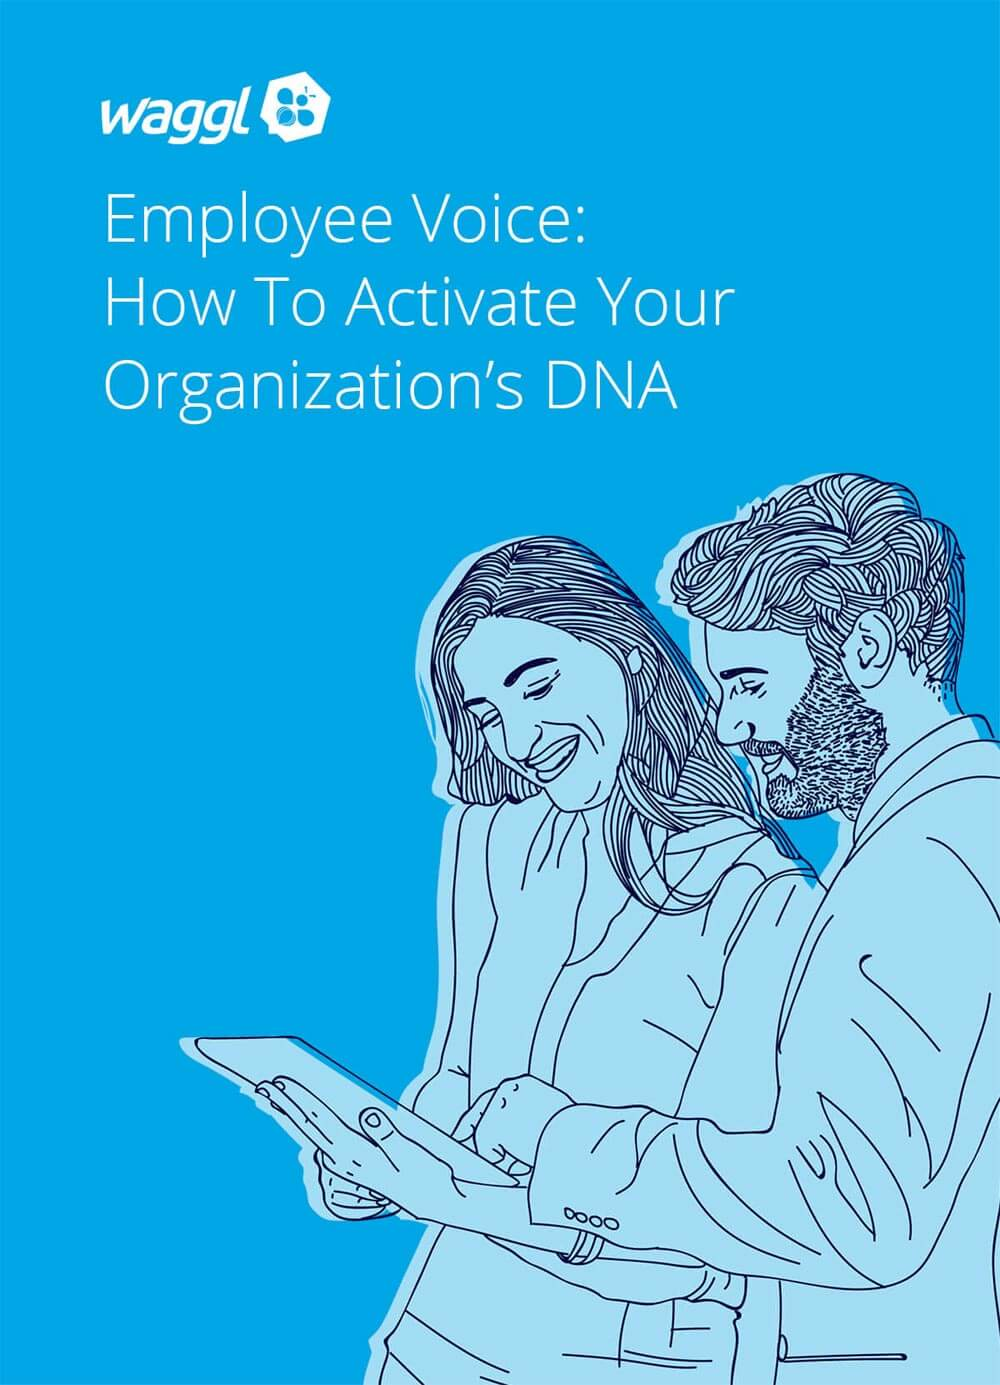 Employee Voice: How To Activate Your Organization's DNA